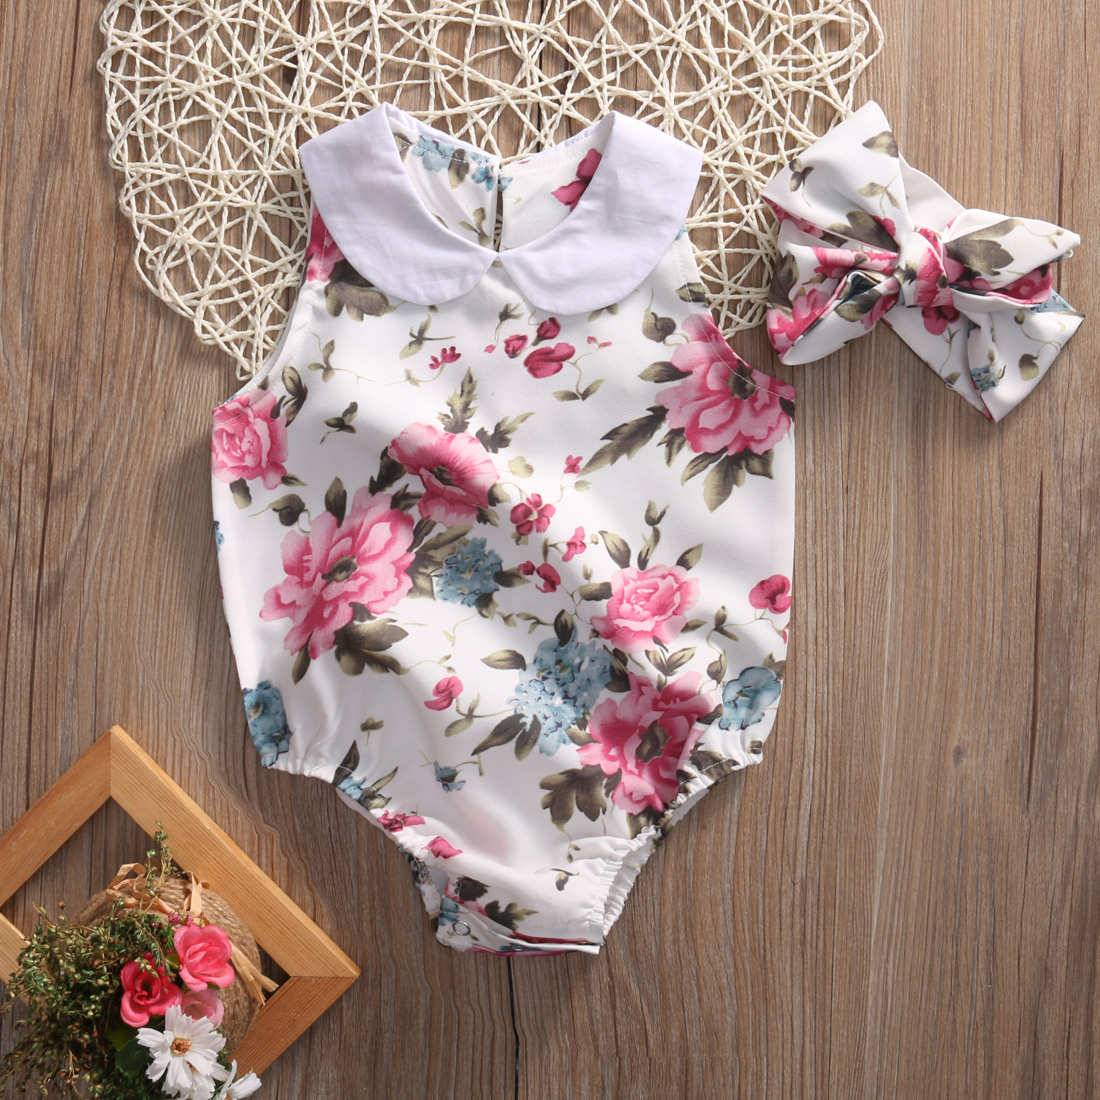 2pcs !! Summer Floral Newborn Infant Baby Girl Clothes Sleevleess Flower Romper Jumpsuit+Headband Baby Outfits Sunsuit Clothes 0 24m baby girl clothes summer rompers newborn baby girl print romper jumpsuit infant headband clothes outfits set